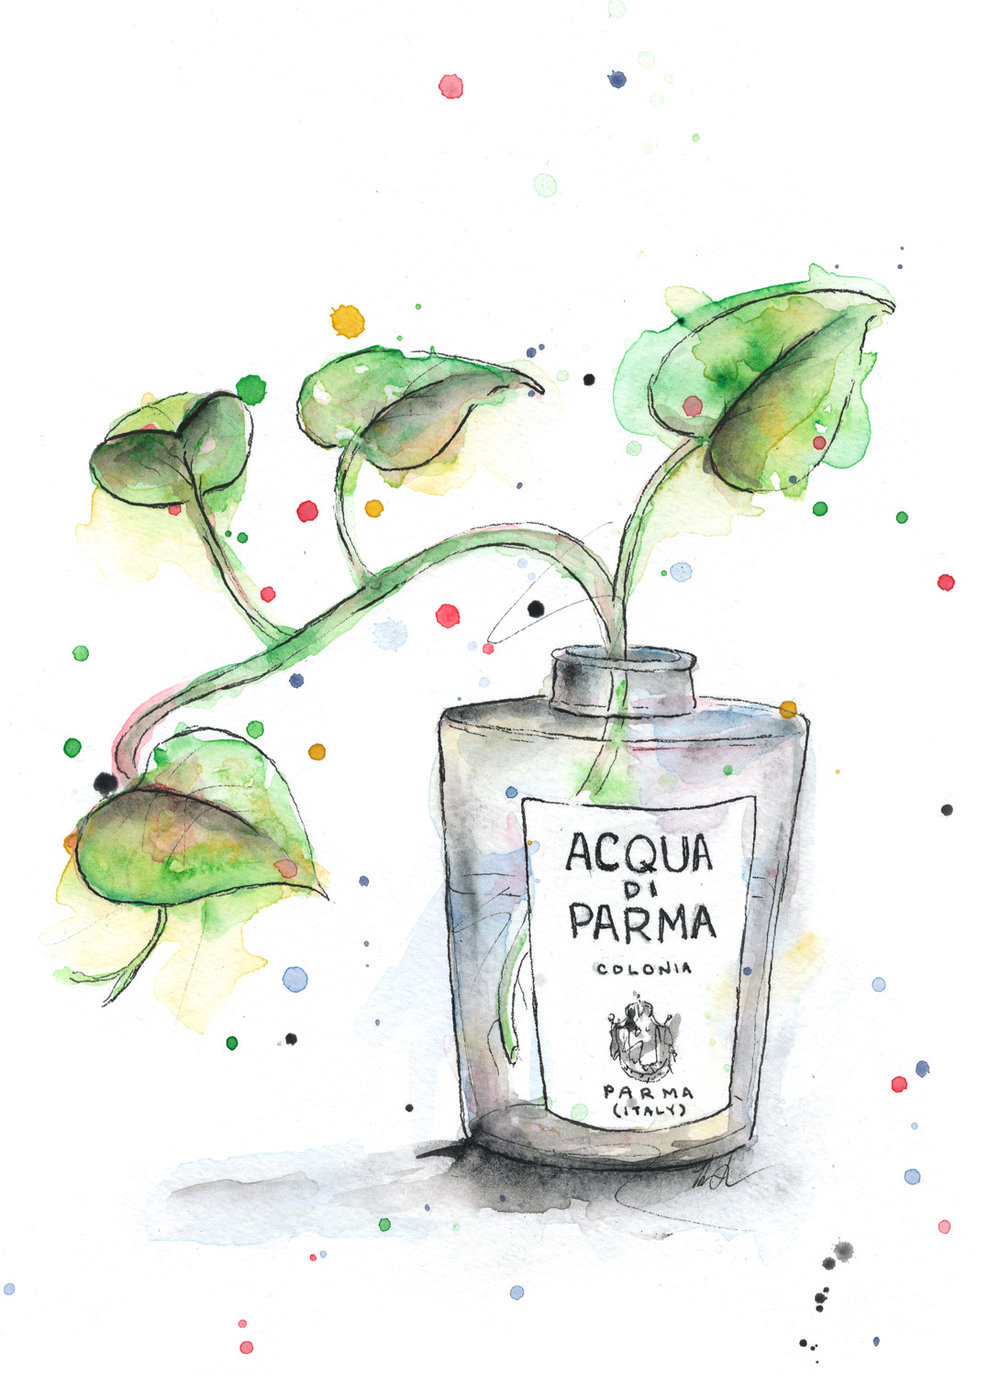 Benjamin-Edward-Acqua-Di-Parma-Colonia-Plant-Propogation-Pathos-watercolour-illustration.jpg